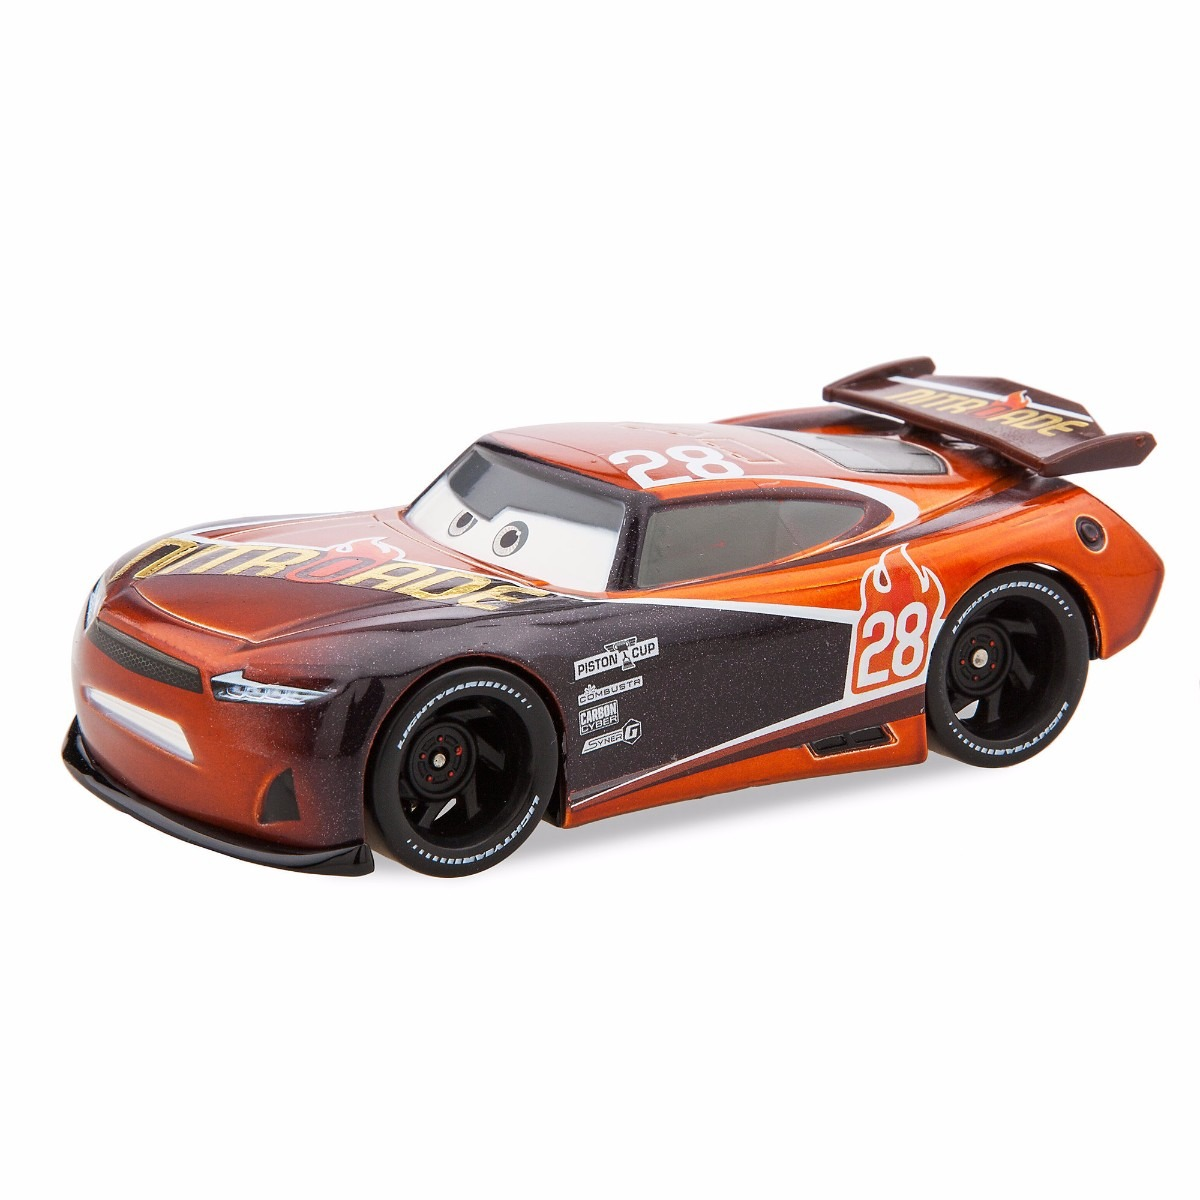 Juguete cars 3 tim treadless disney store u s 24 00 en - Juguetes disney cars ...